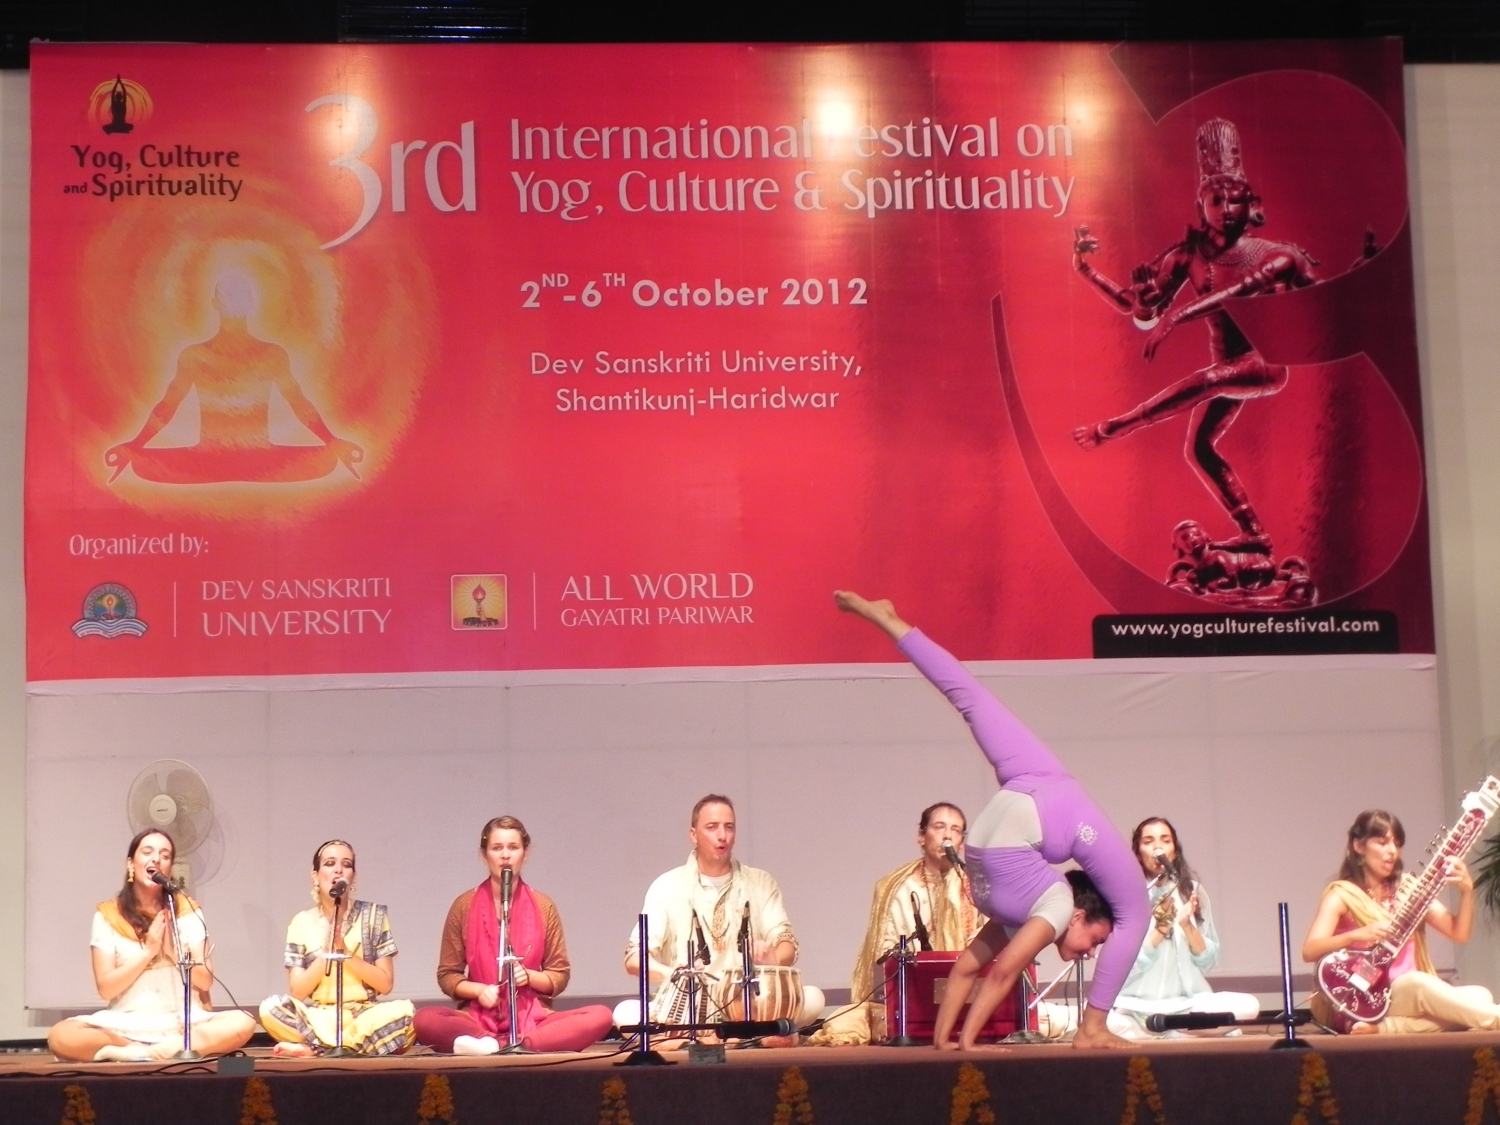 3rd International Festival on Yoga, Culture and Spirituality - Shántikunj Áshrama, Haridvar, India - 2012, octubre, 2 a 6